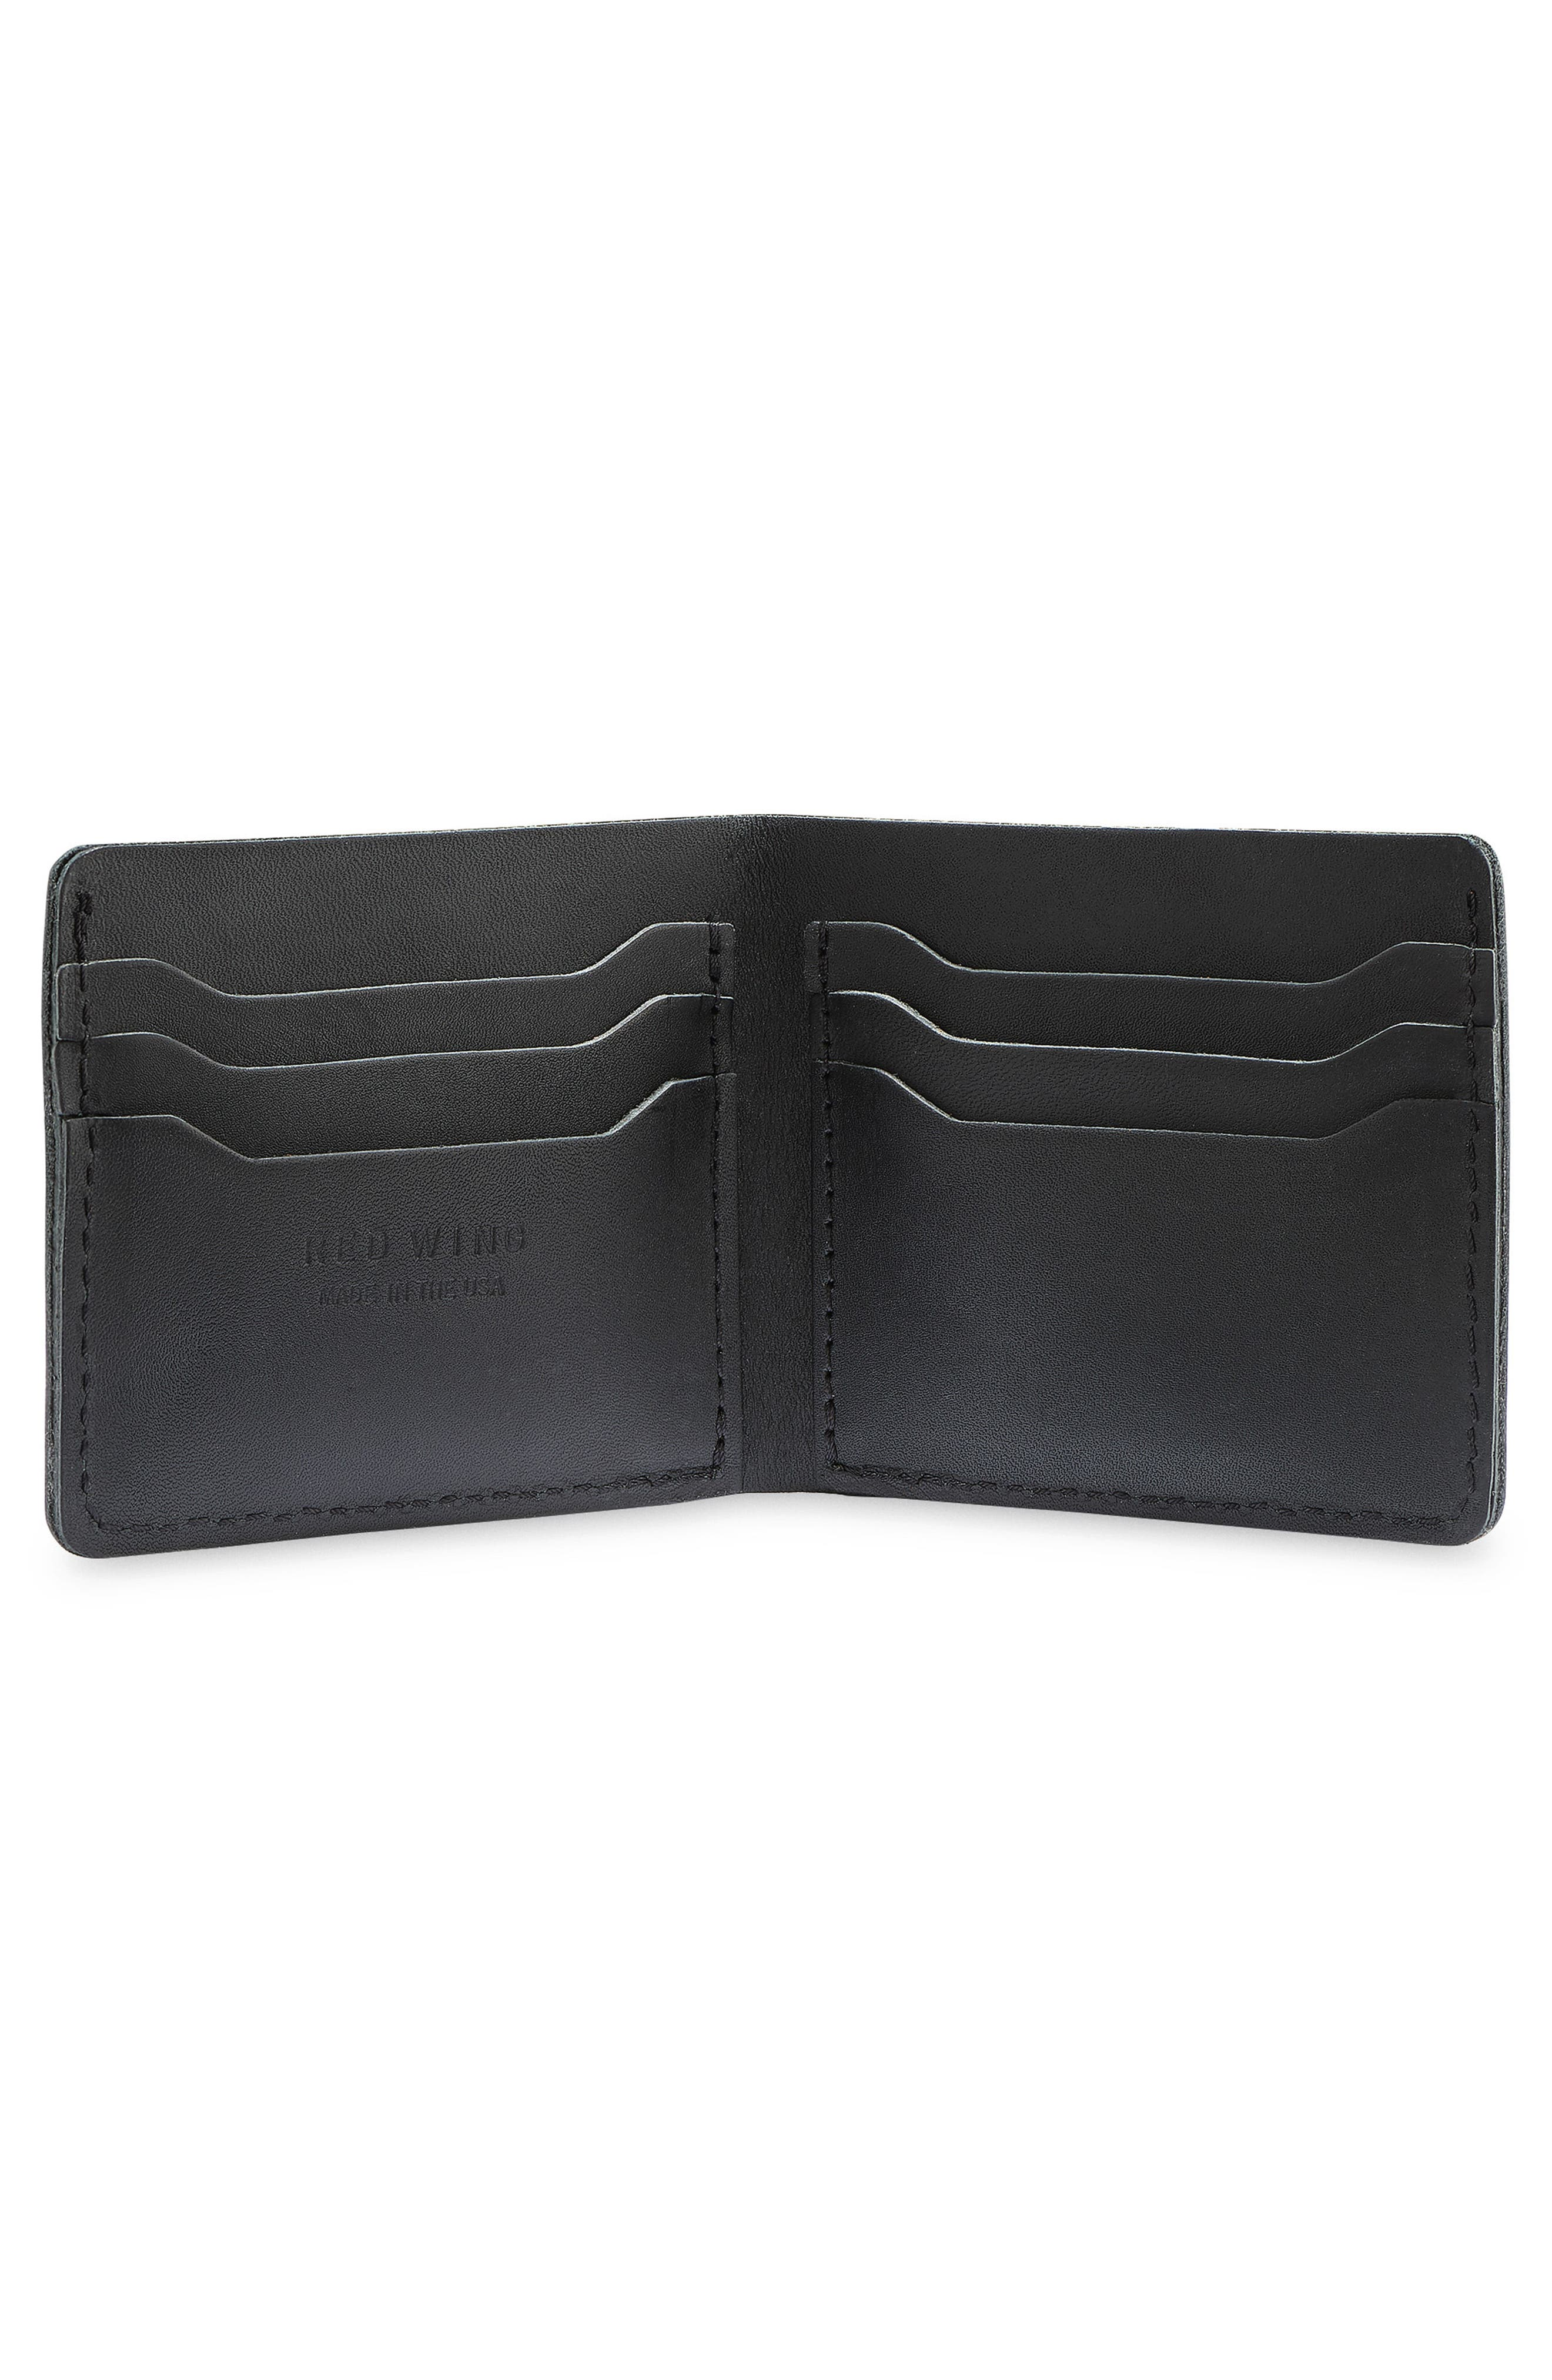 RED WING,                             Classic Bifold Leather Wallet,                             Alternate thumbnail 2, color,                             BLACK